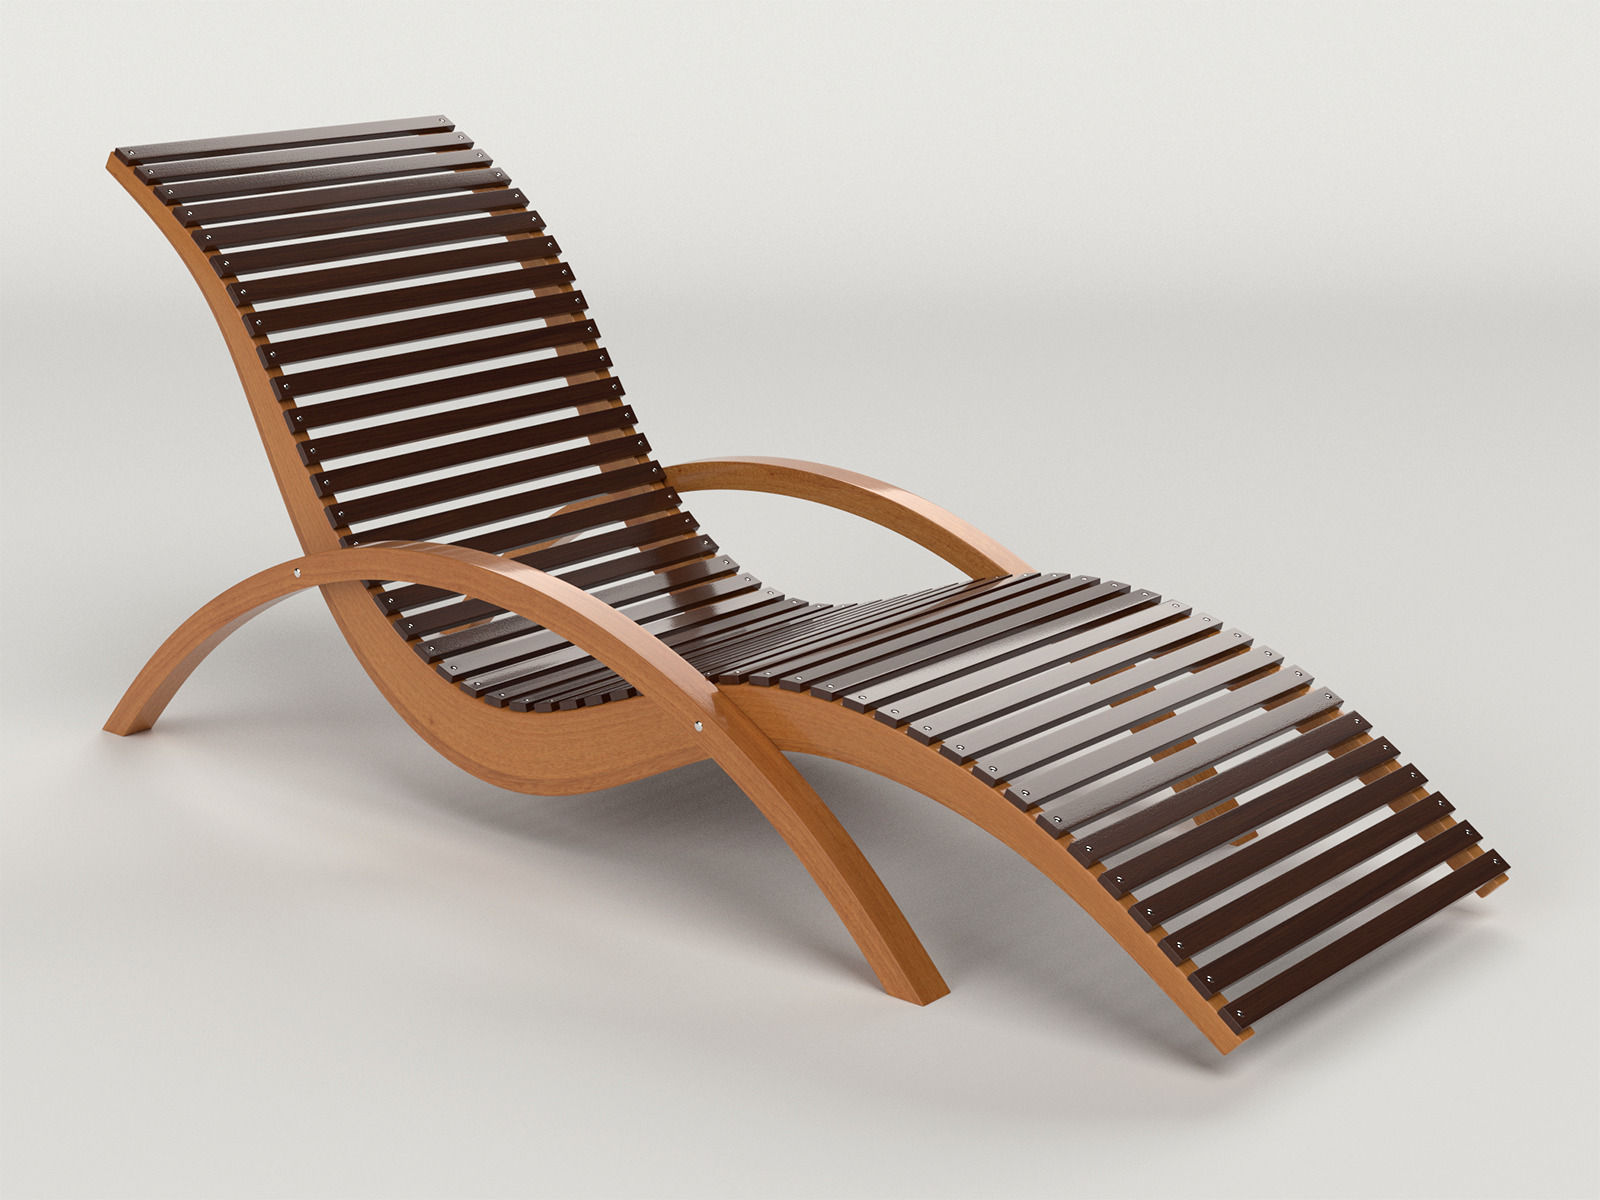 lounge chair outdoor wood patio deck 3d model obj dxf mtl 1 - Garden Furniture 3d Model